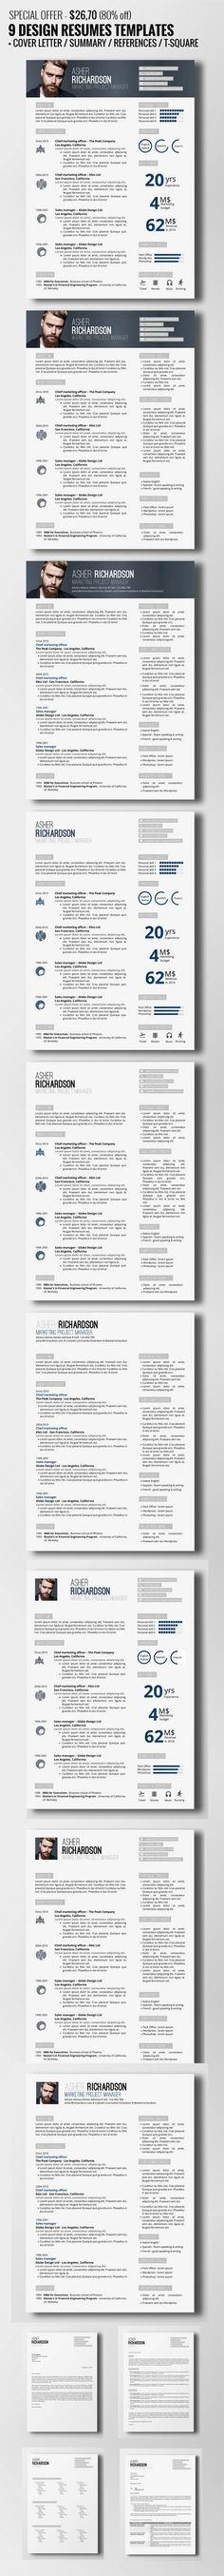 435 best Resume images on Pinterest Resume design, Design resume - how long should a resume be